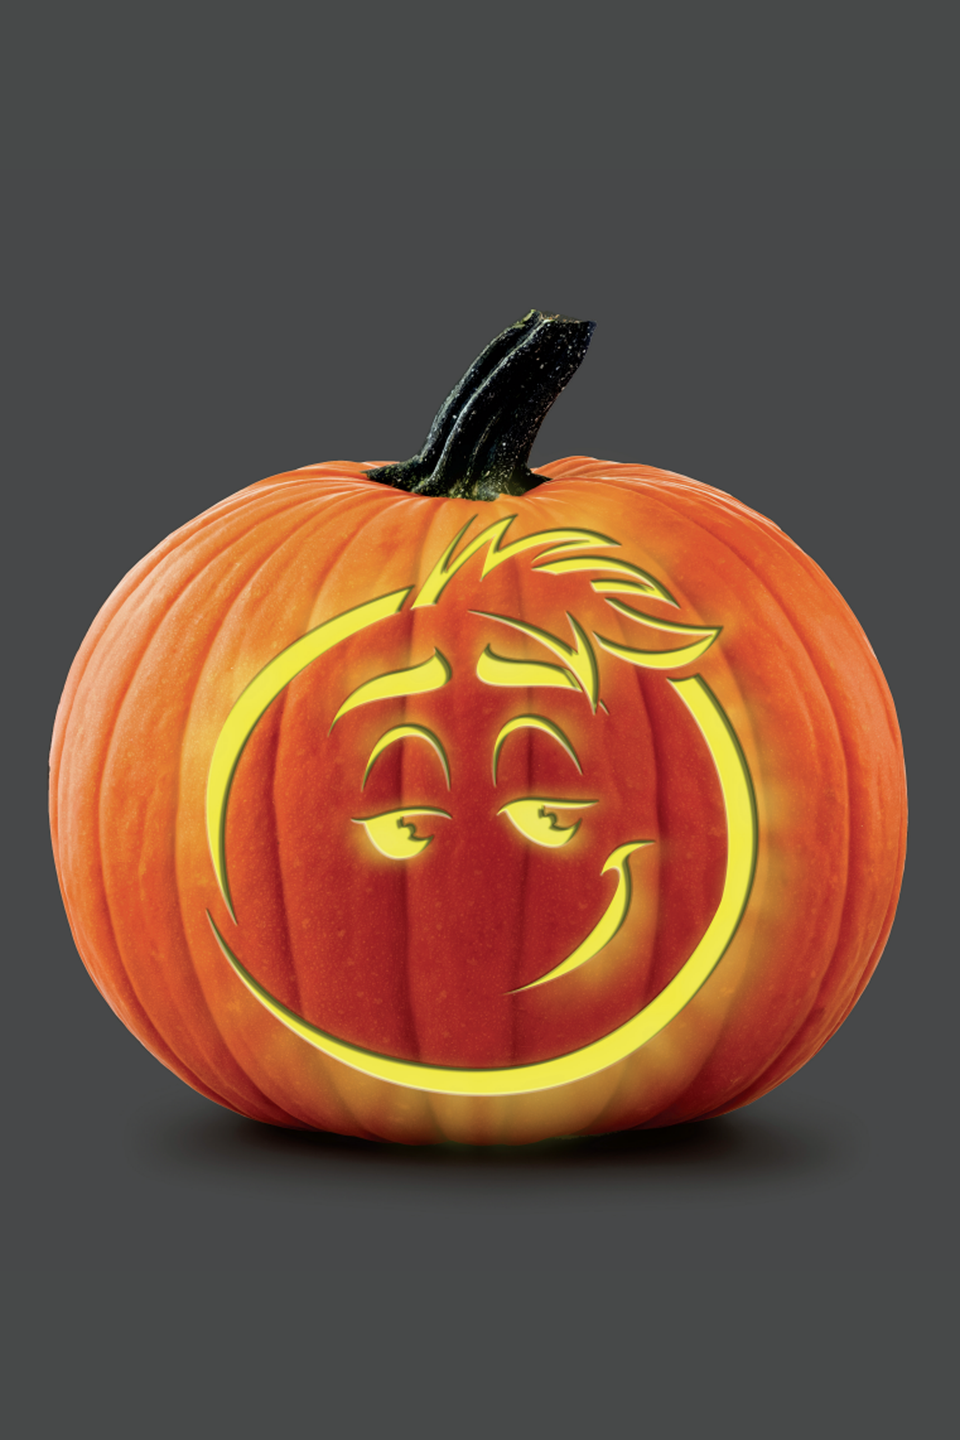 """<p>Did your family get a kick out of <em>The Emoji Movie</em>? This blogger has free carving templates—and coloring pages!—of the characters.</p><p><strong>Get the tutorial at <a href=""""https://www.craftymama-in-me.com/free-emoji-movie-pumpkin-carving-templates/"""" rel=""""nofollow noopener"""" target=""""_blank"""" data-ylk=""""slk:Crafty Mama in Me"""" class=""""link rapid-noclick-resp"""">Crafty Mama in Me</a>.</strong><br></p><p><a class=""""link rapid-noclick-resp"""" href=""""https://www.amazon.com/dp/B07577X6HF?tag=syn-yahoo-20&ascsubtag=%5Bartid%7C10050.g.22133548%5Bsrc%7Cyahoo-us"""" rel=""""nofollow noopener"""" target=""""_blank"""" data-ylk=""""slk:SHOP TEA LIGHTS"""">SHOP TEA LIGHTS</a></p>"""